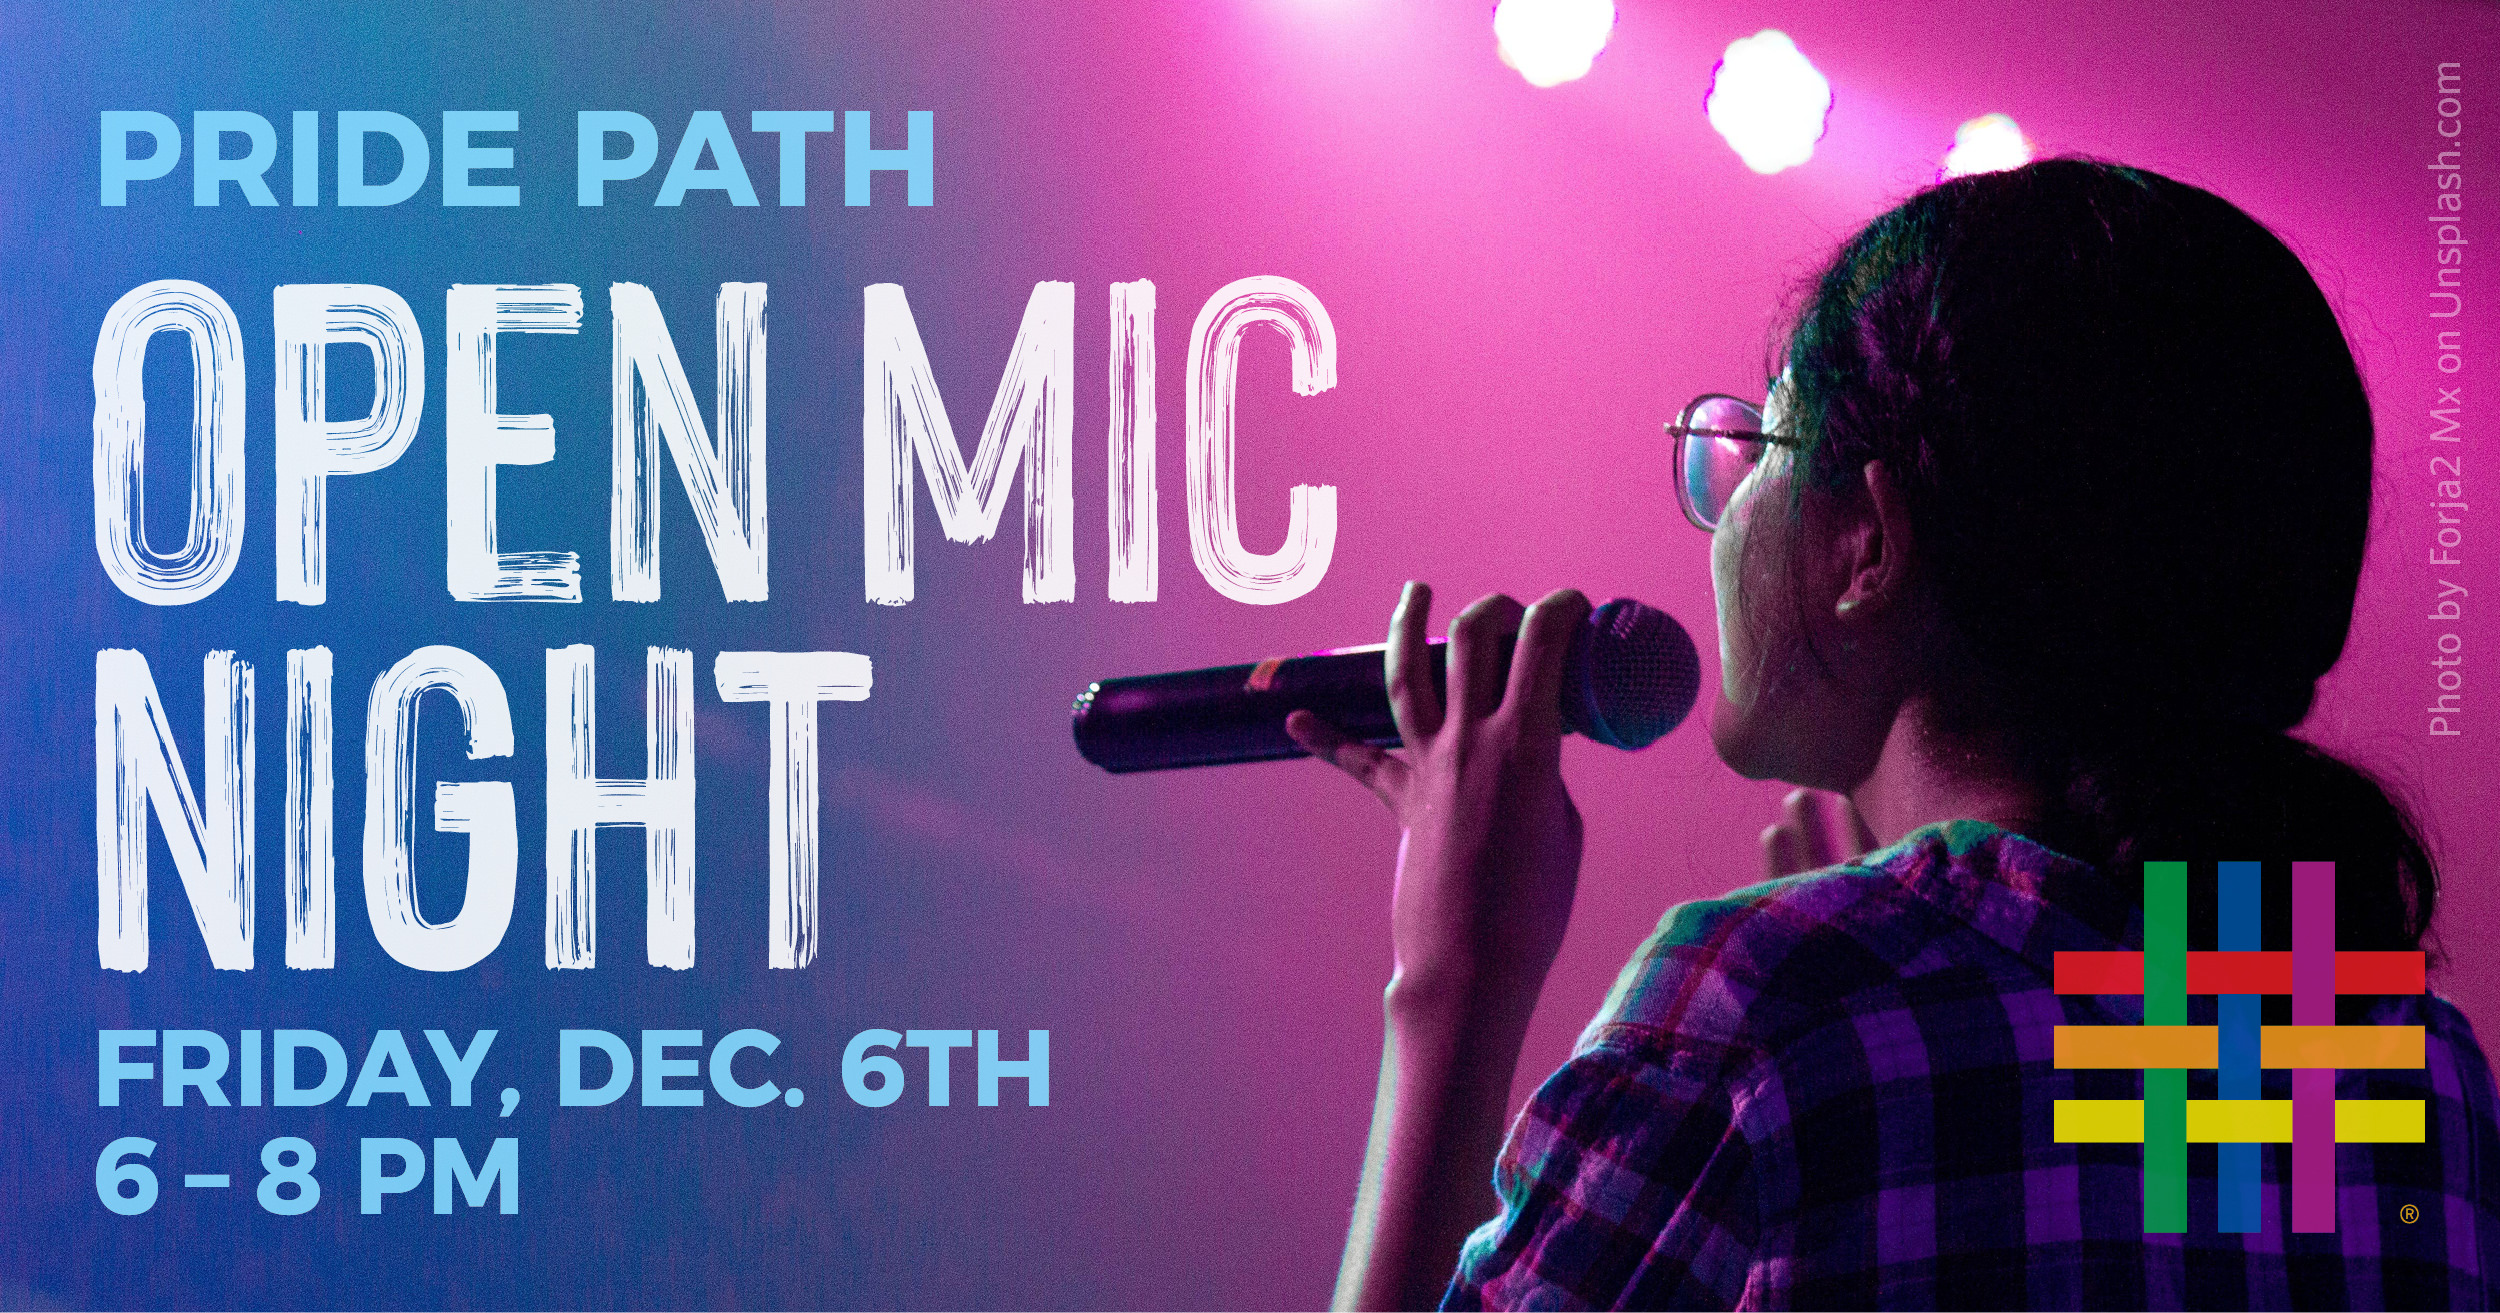 Pride Path Open Mic Night at Brooklyn Community Pride Center